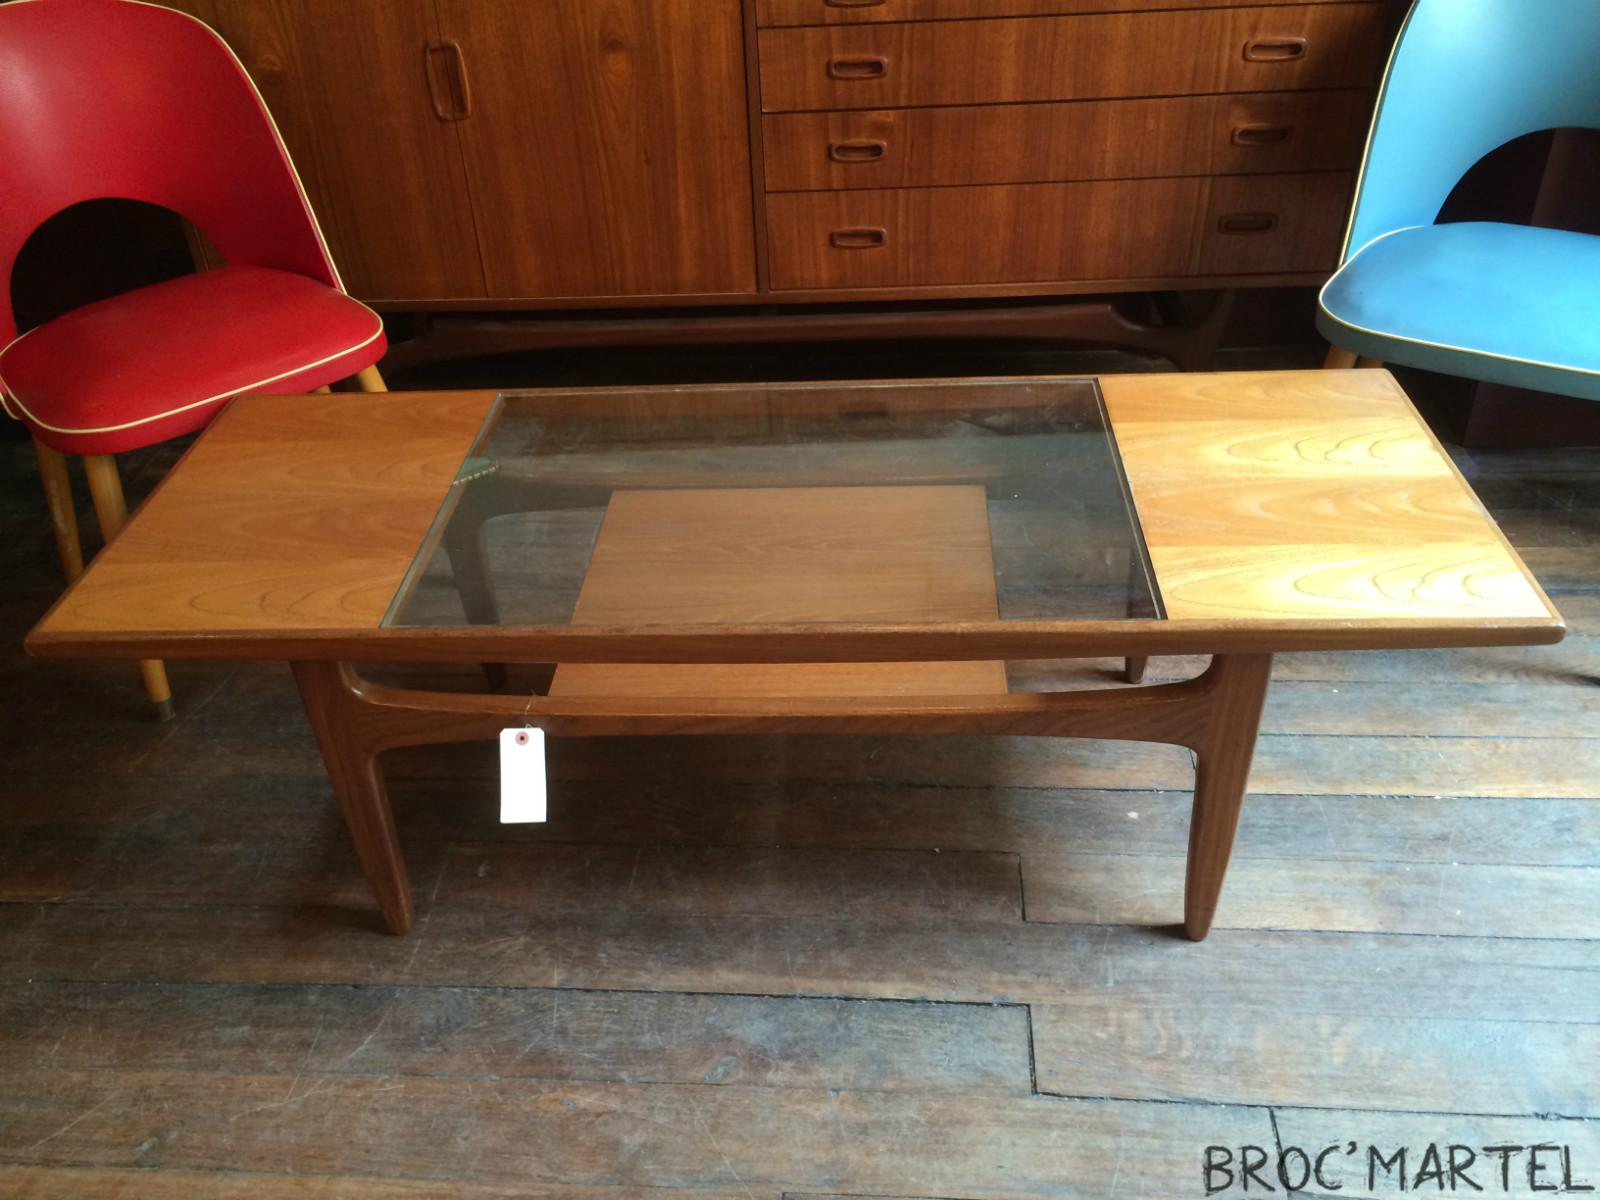 Table basse scandinave double plateau verre et teck ann e for Table basse teck et verre